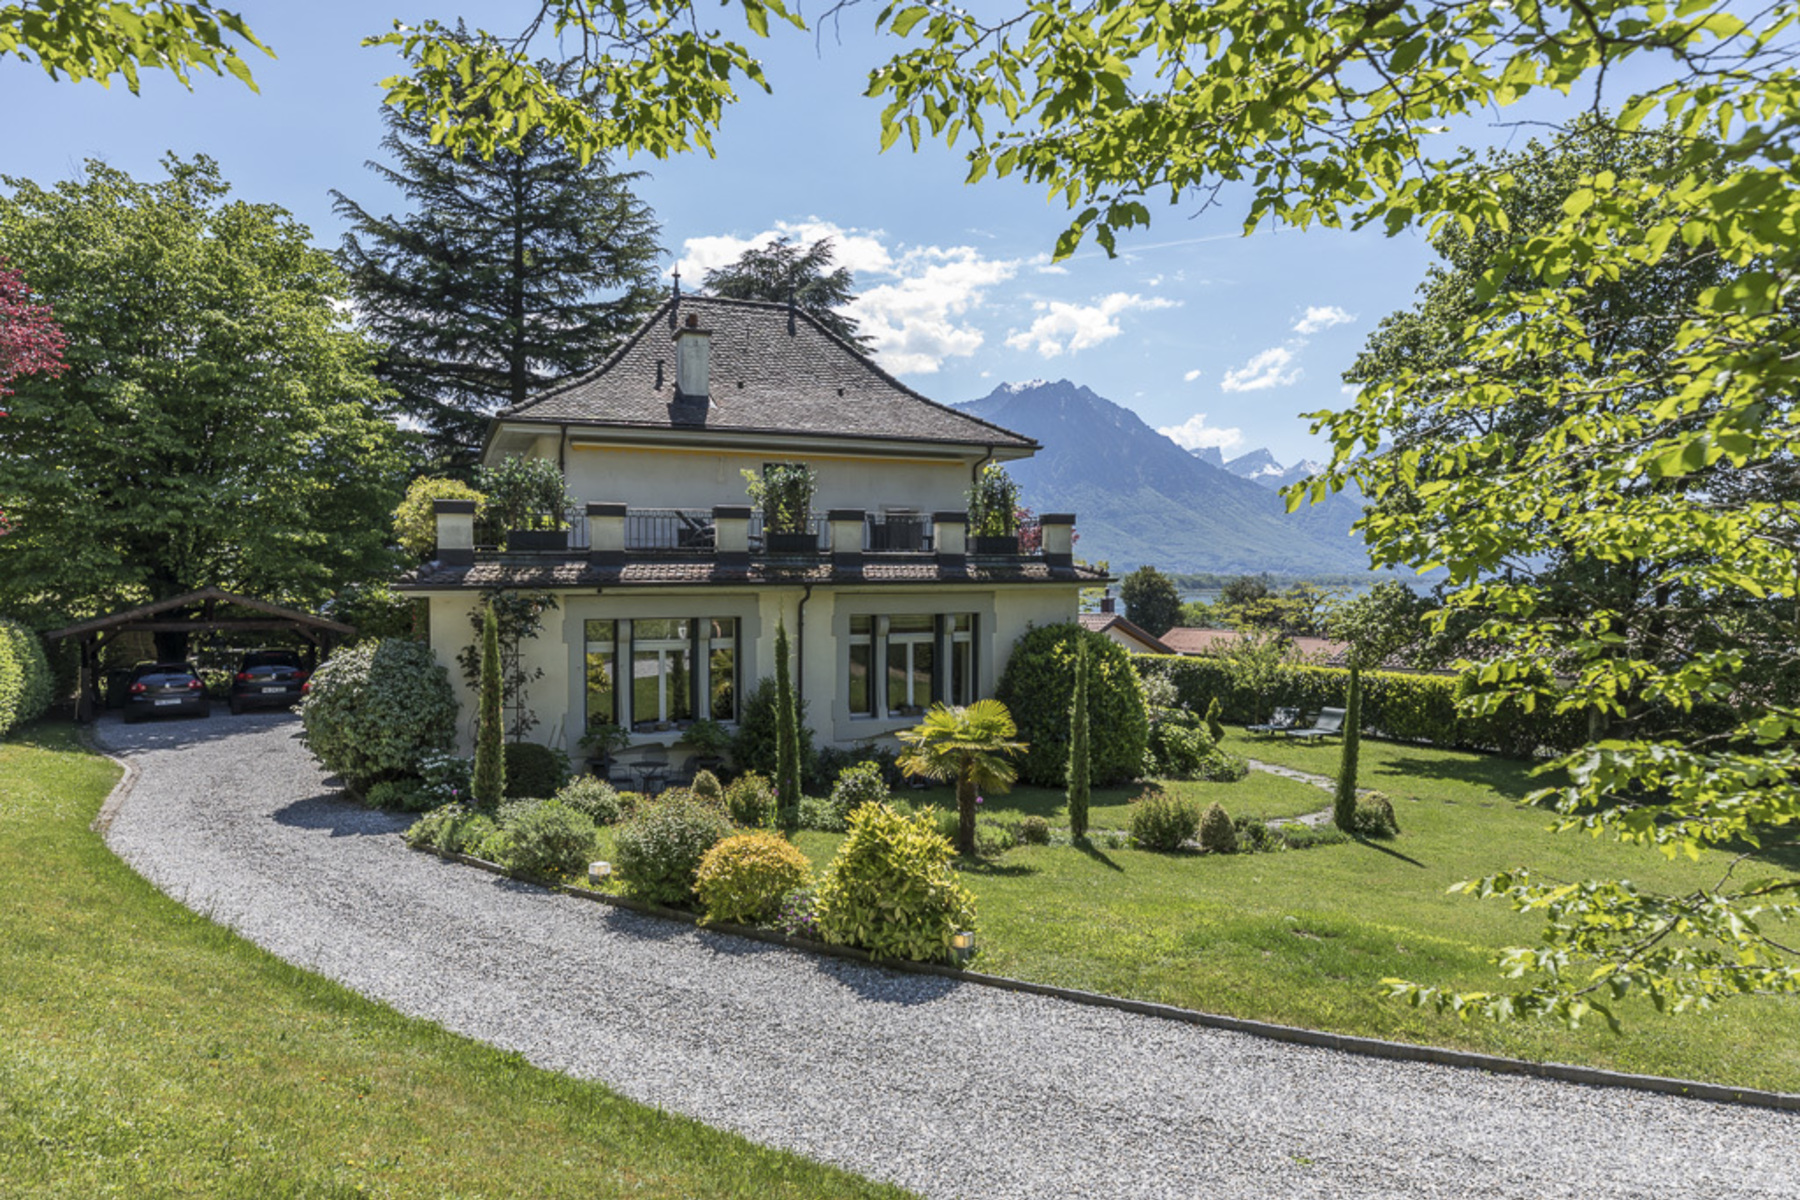 Casa Unifamiliar por un Venta en Sumptuous mansion with undeniable charm, just a stone's throw from lake Villeneuve Villeneuve Vd, Vaud, 1844 Suiza